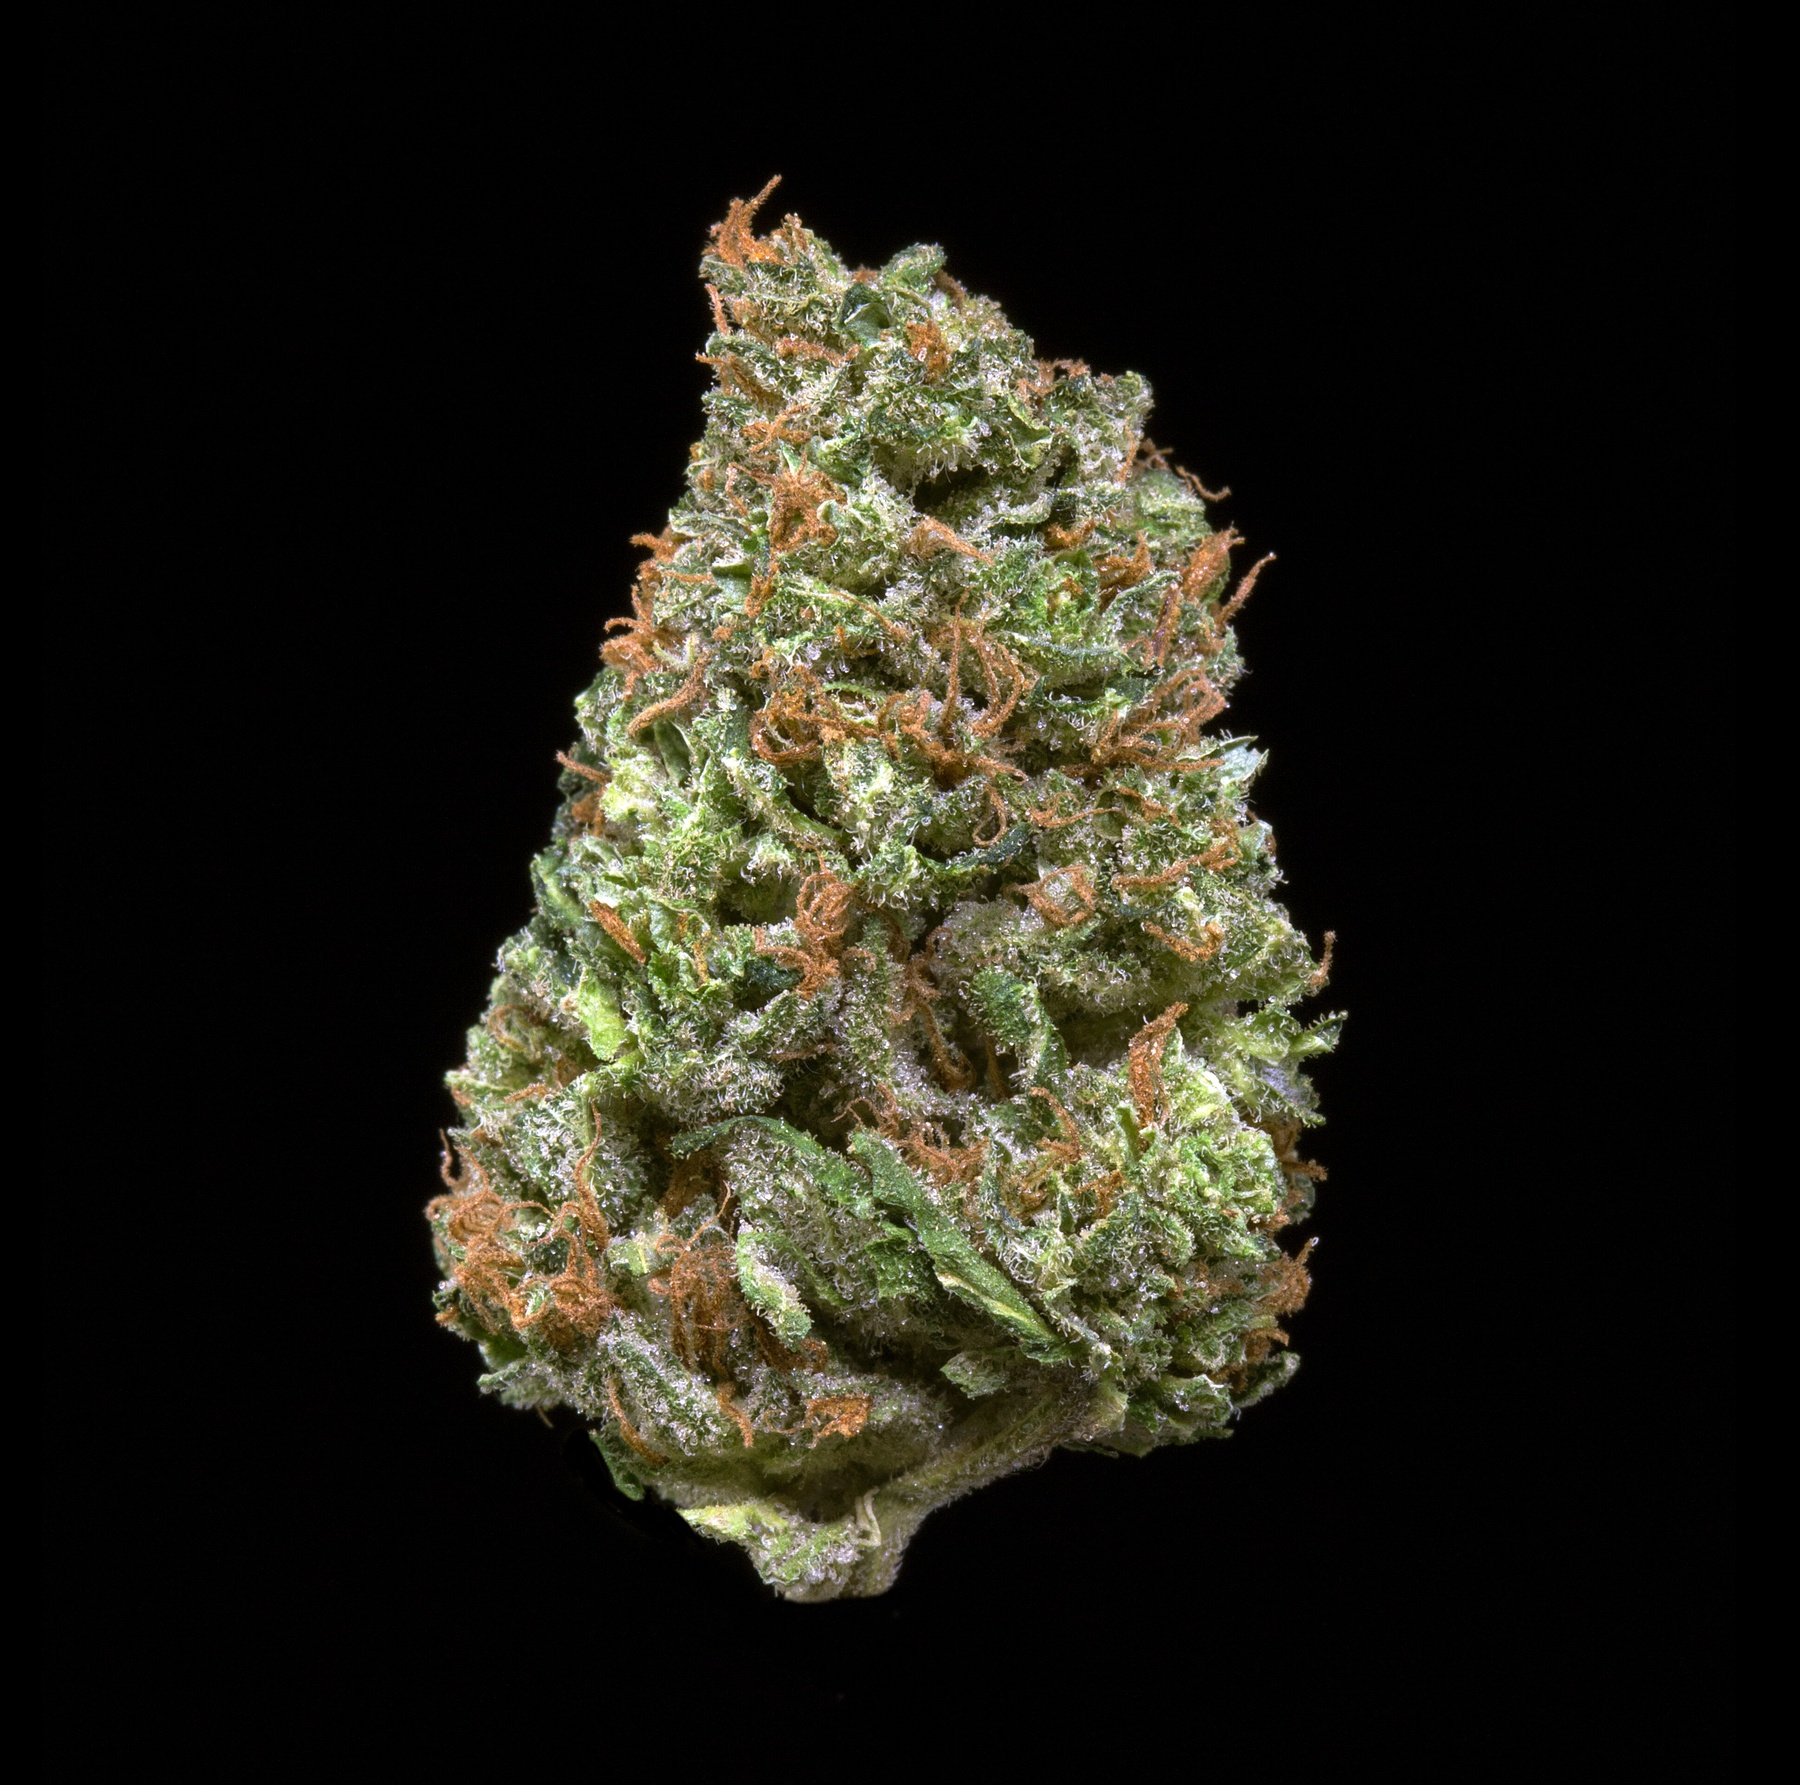 Black Triangle Kush (AU Limit: 3.5g Flower TOTAL / No Med Limit) Product image